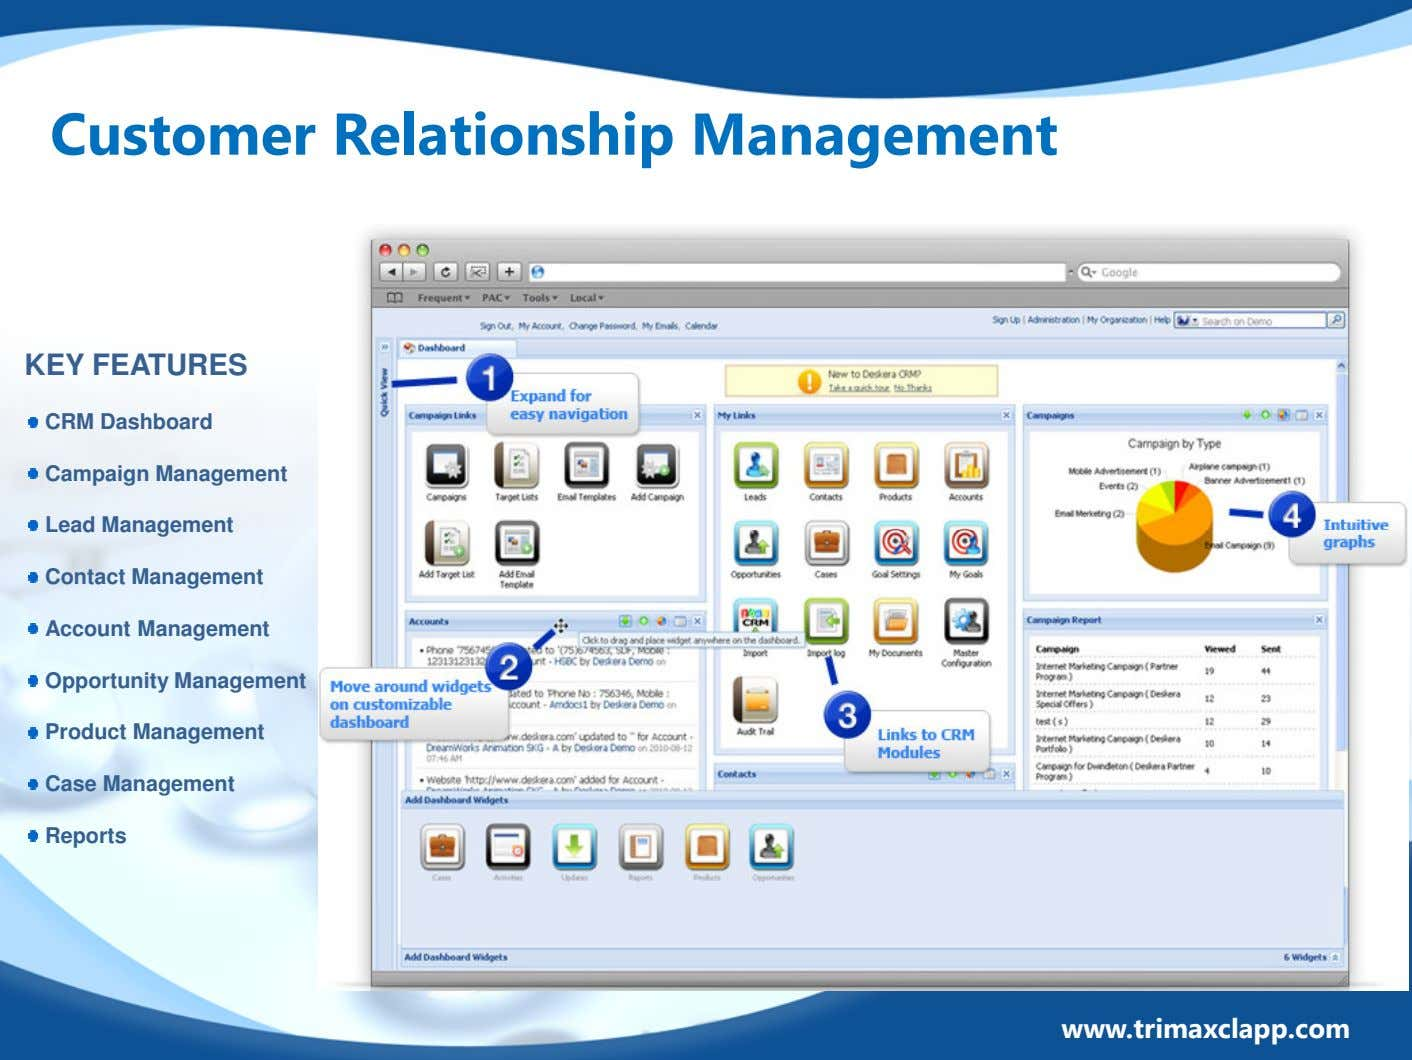 Customer Relationship Management KEY FEATURES CRM Dashboard Campaign Management Lead Management Contact Management